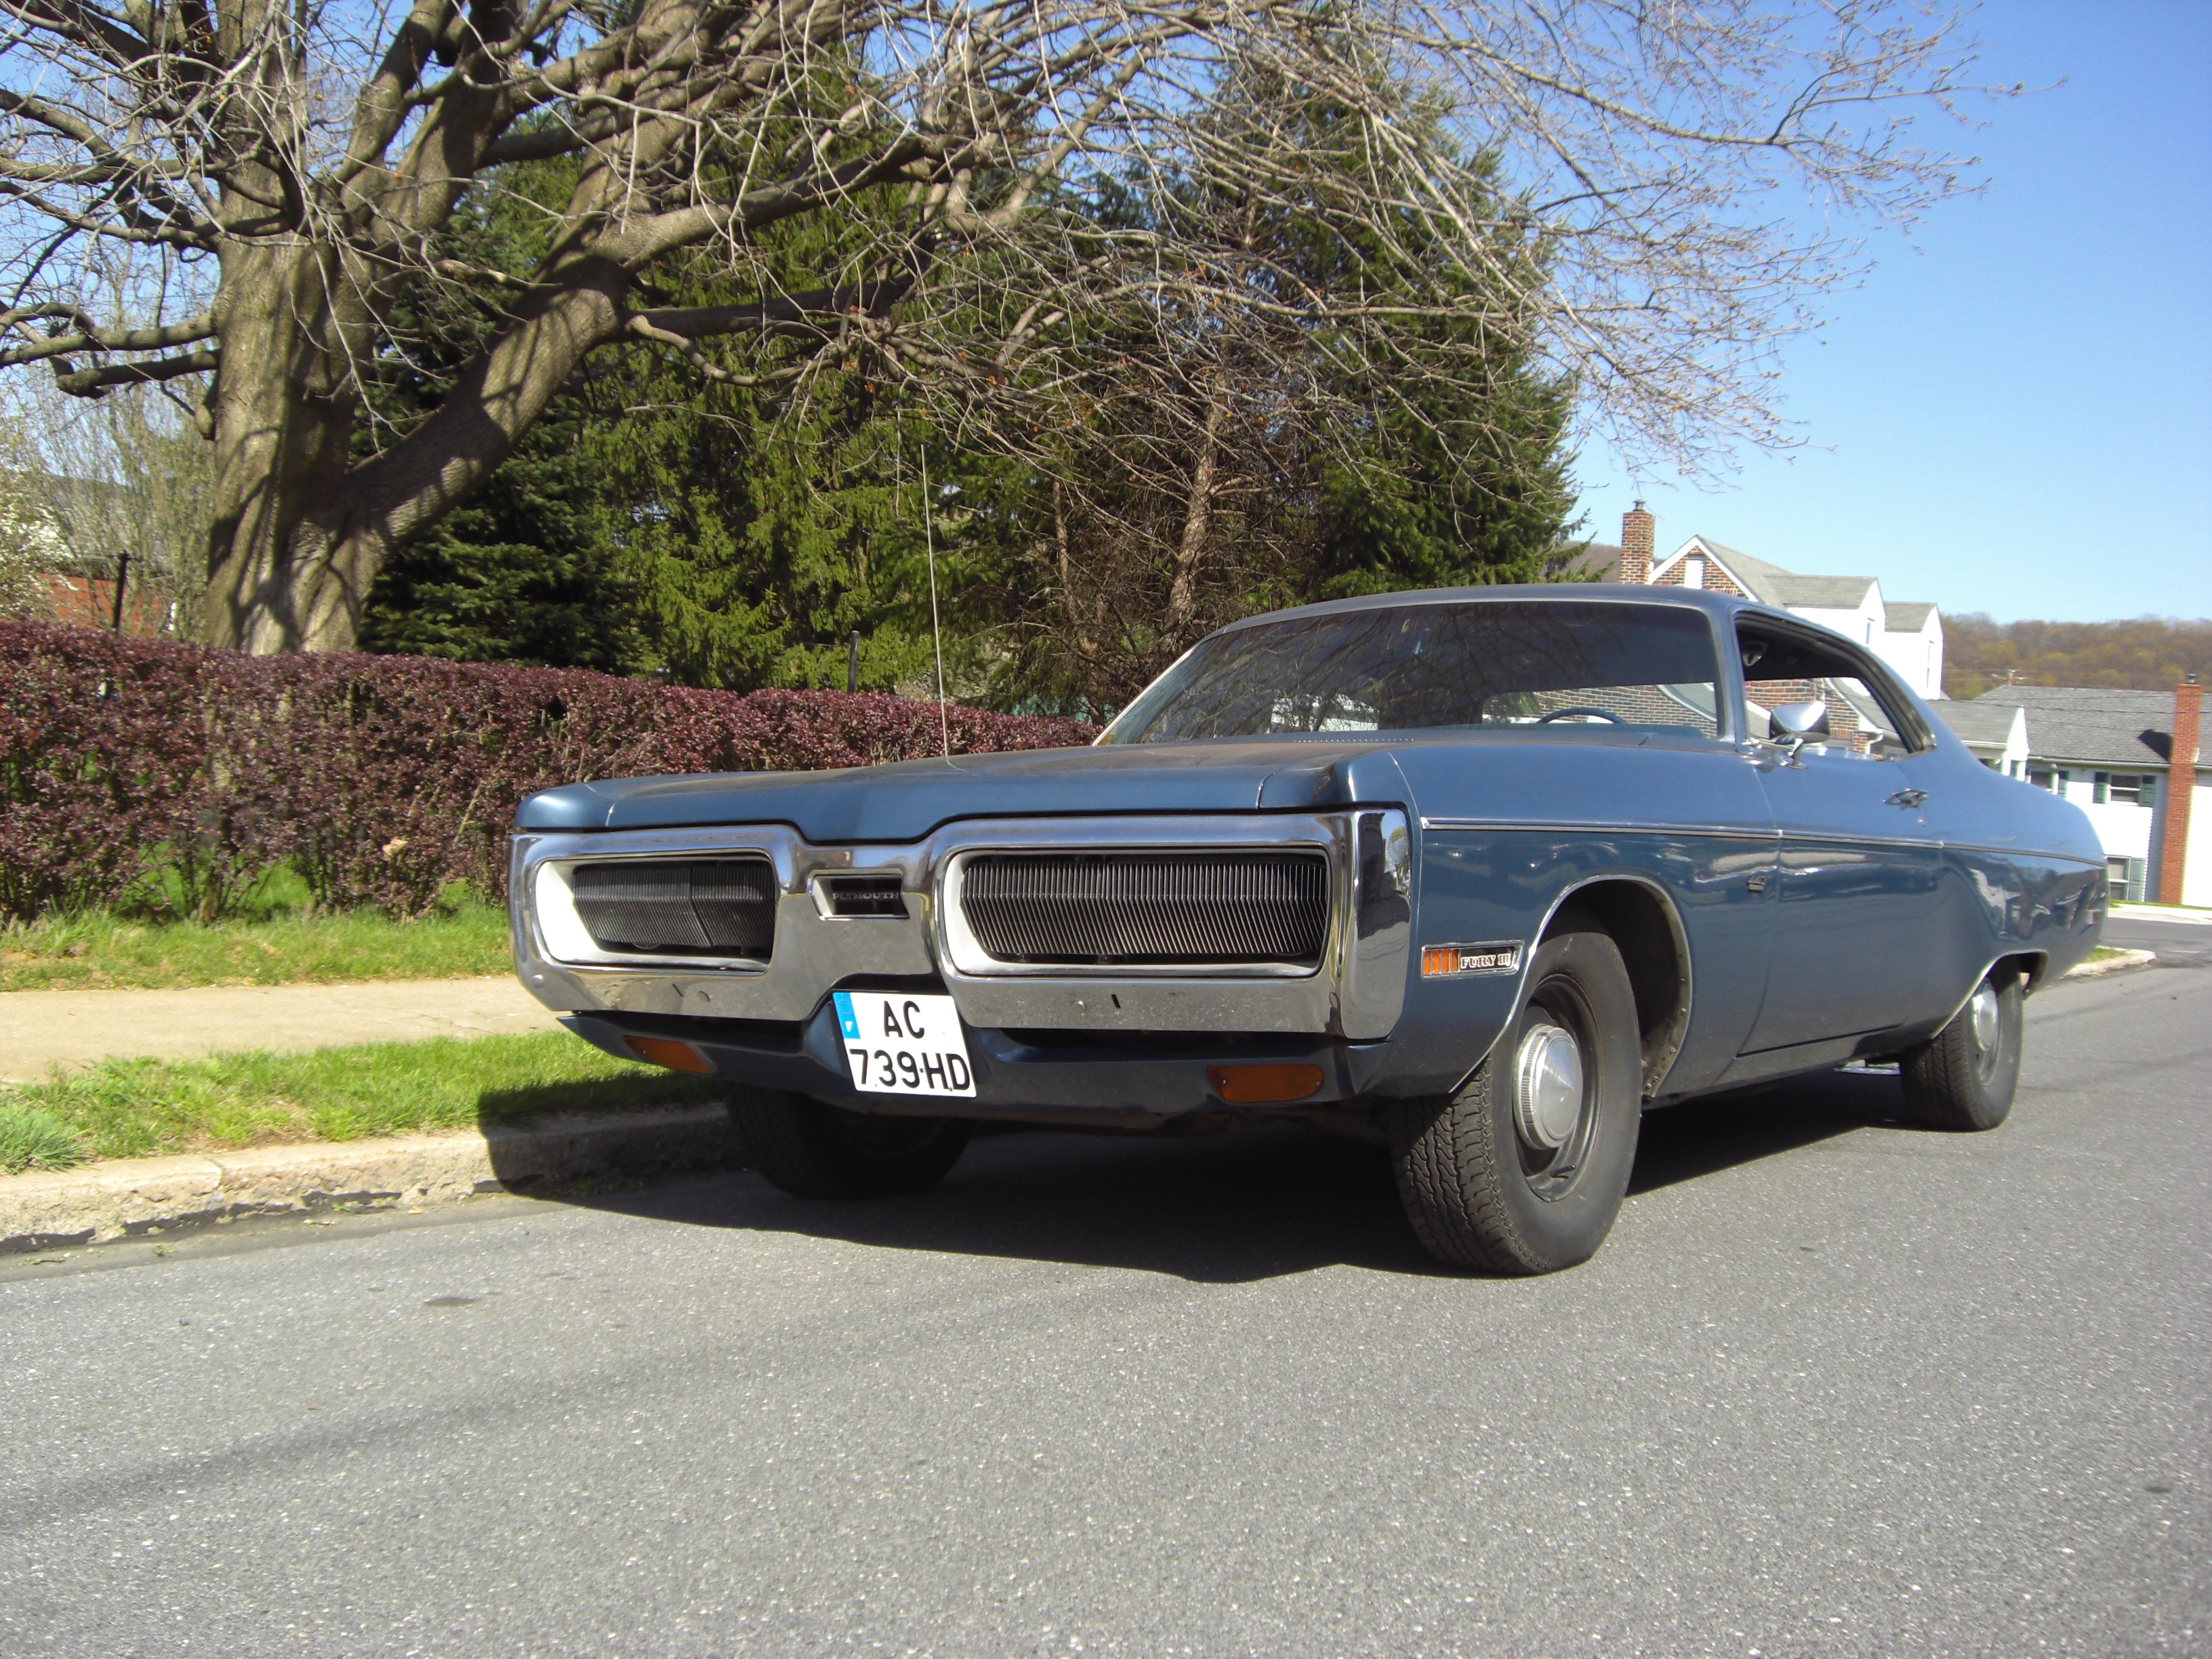 Plymouth Fury 3 Coupe 1972 Cop Car American Cars And